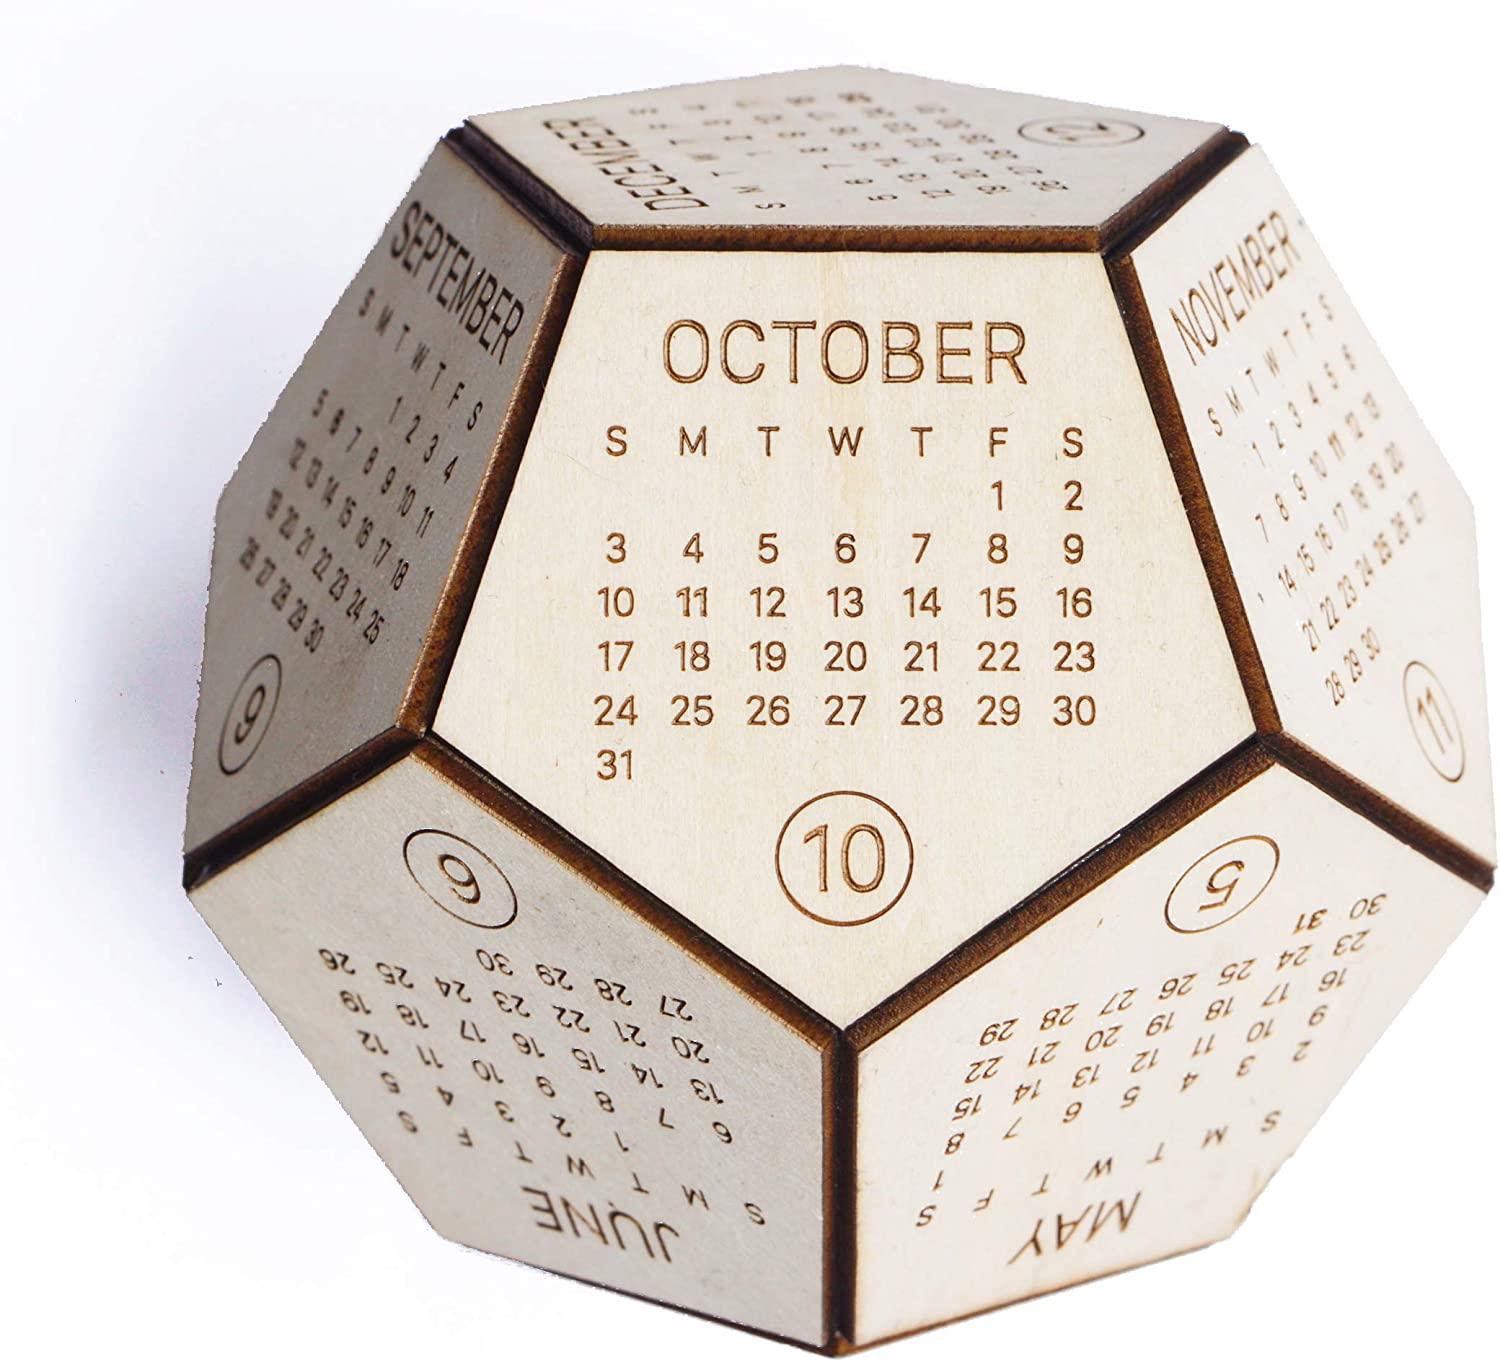 Best Christmas Gifts For Employees 2021 Amazon Com Wooden 12 Sided Calendar 2021 Best Christmas Gifts Wood Desk Calendar Thanksgiving Gift New Year Employee Gift Desk Decor Presents For Boss Office Products